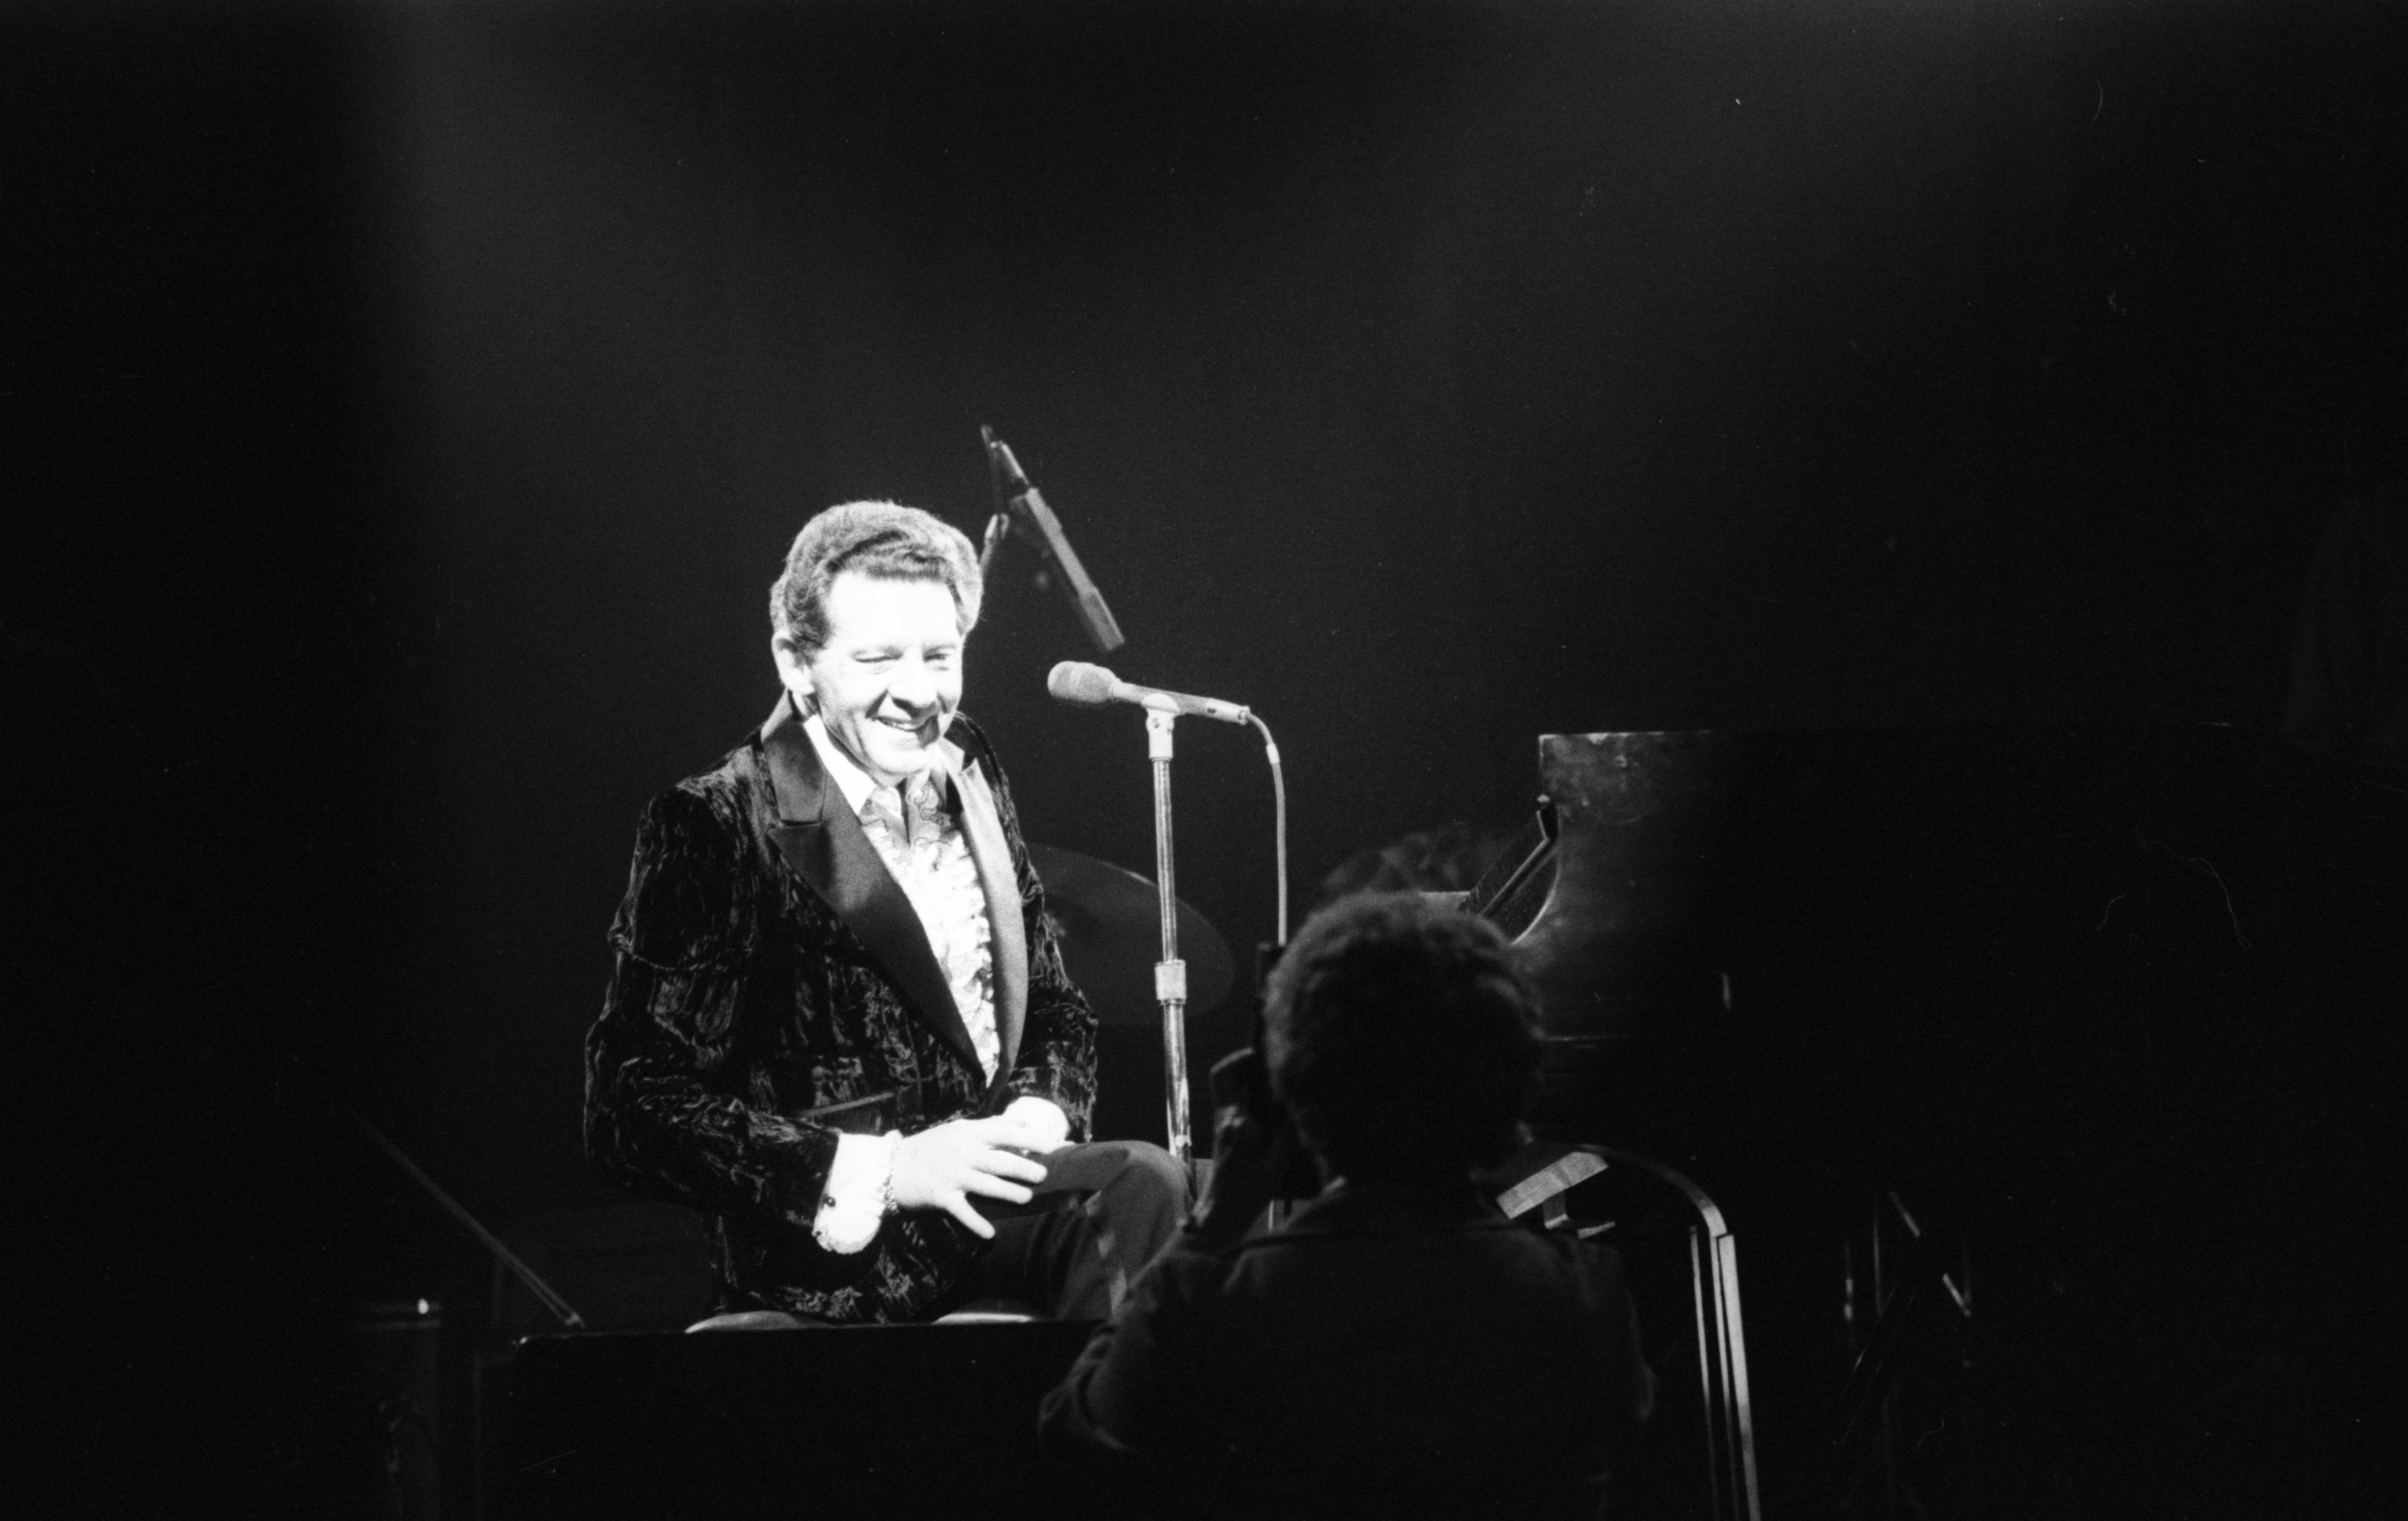 Jerry Lee Lewis Smiles For Camera While Performing At The Second Chance Club, February 3, 1981 image